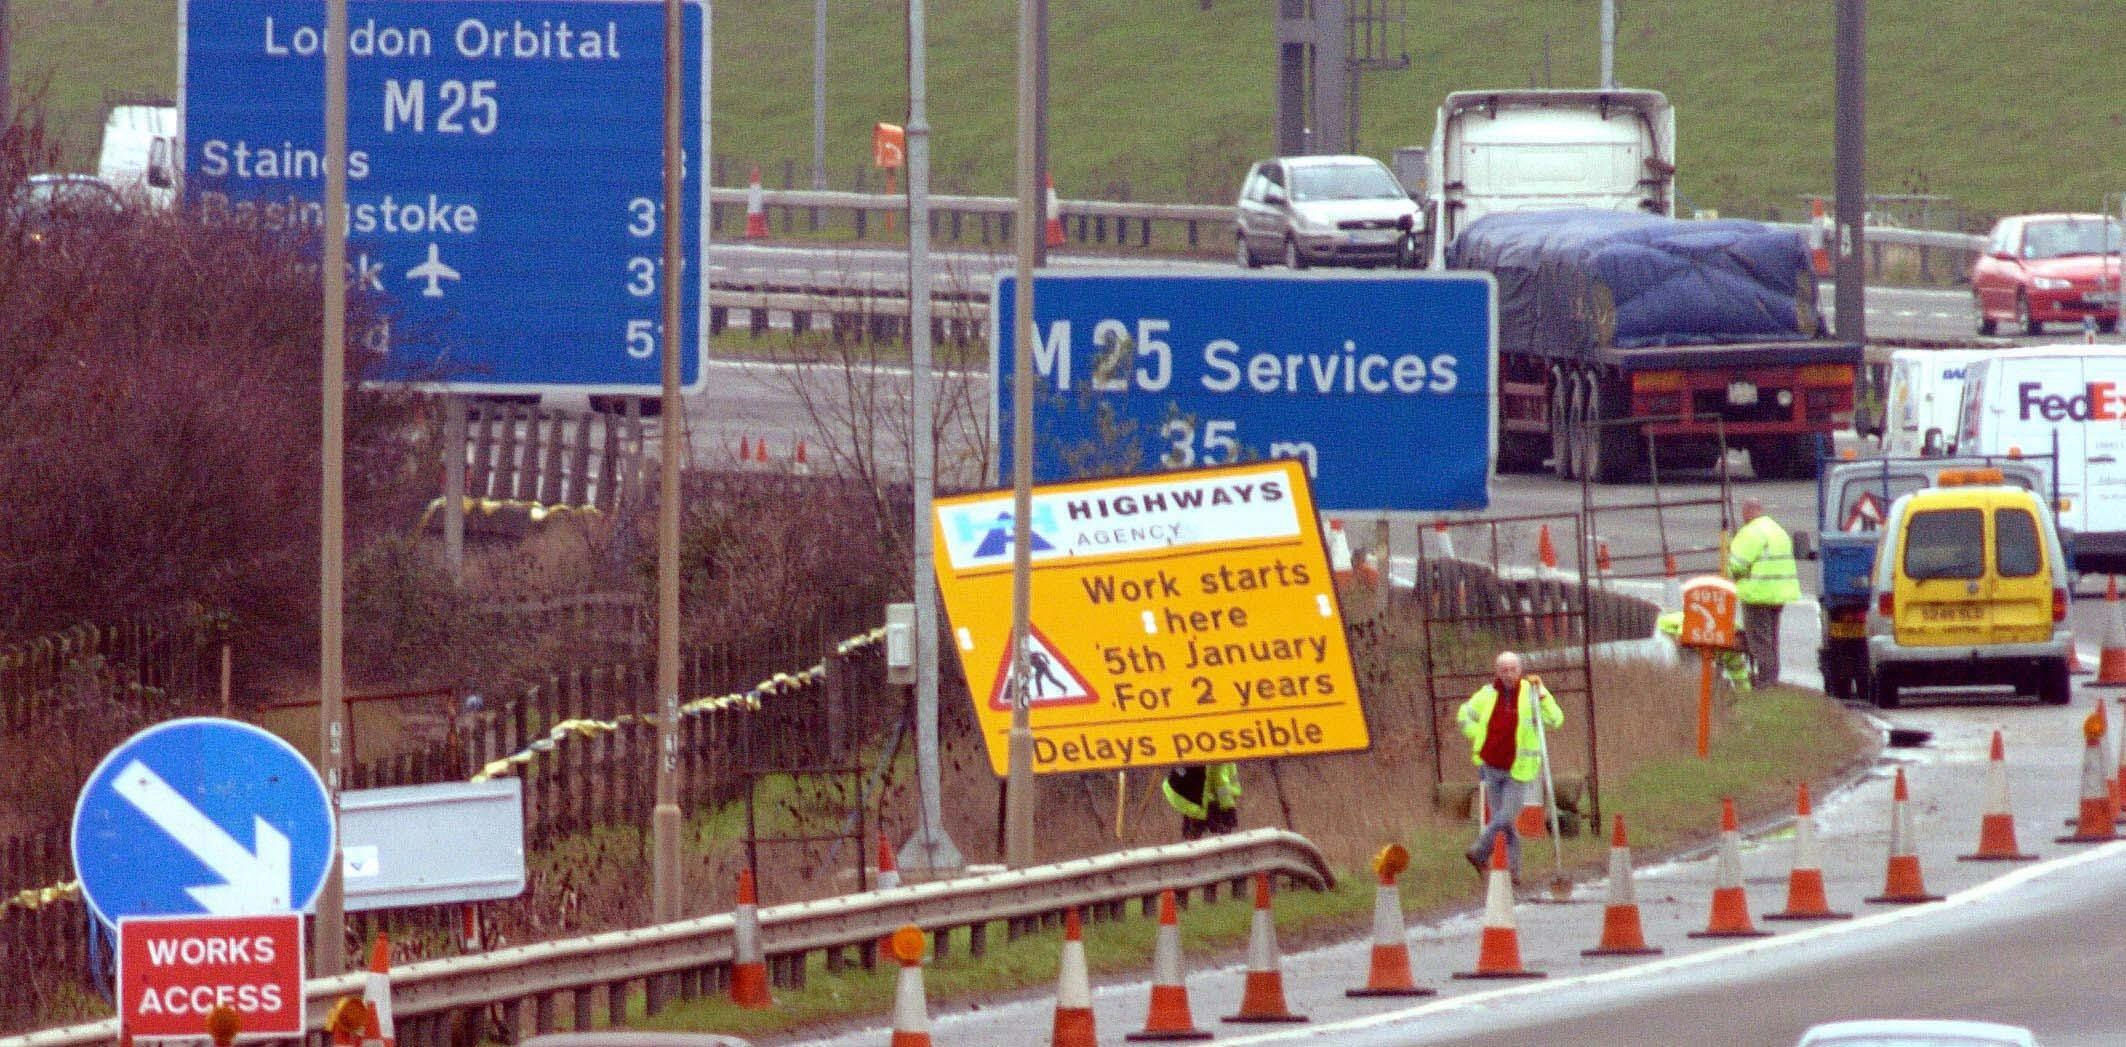 Drivers could be allowed to travel at higher speeds through motorway roadworks depending on the day of the week